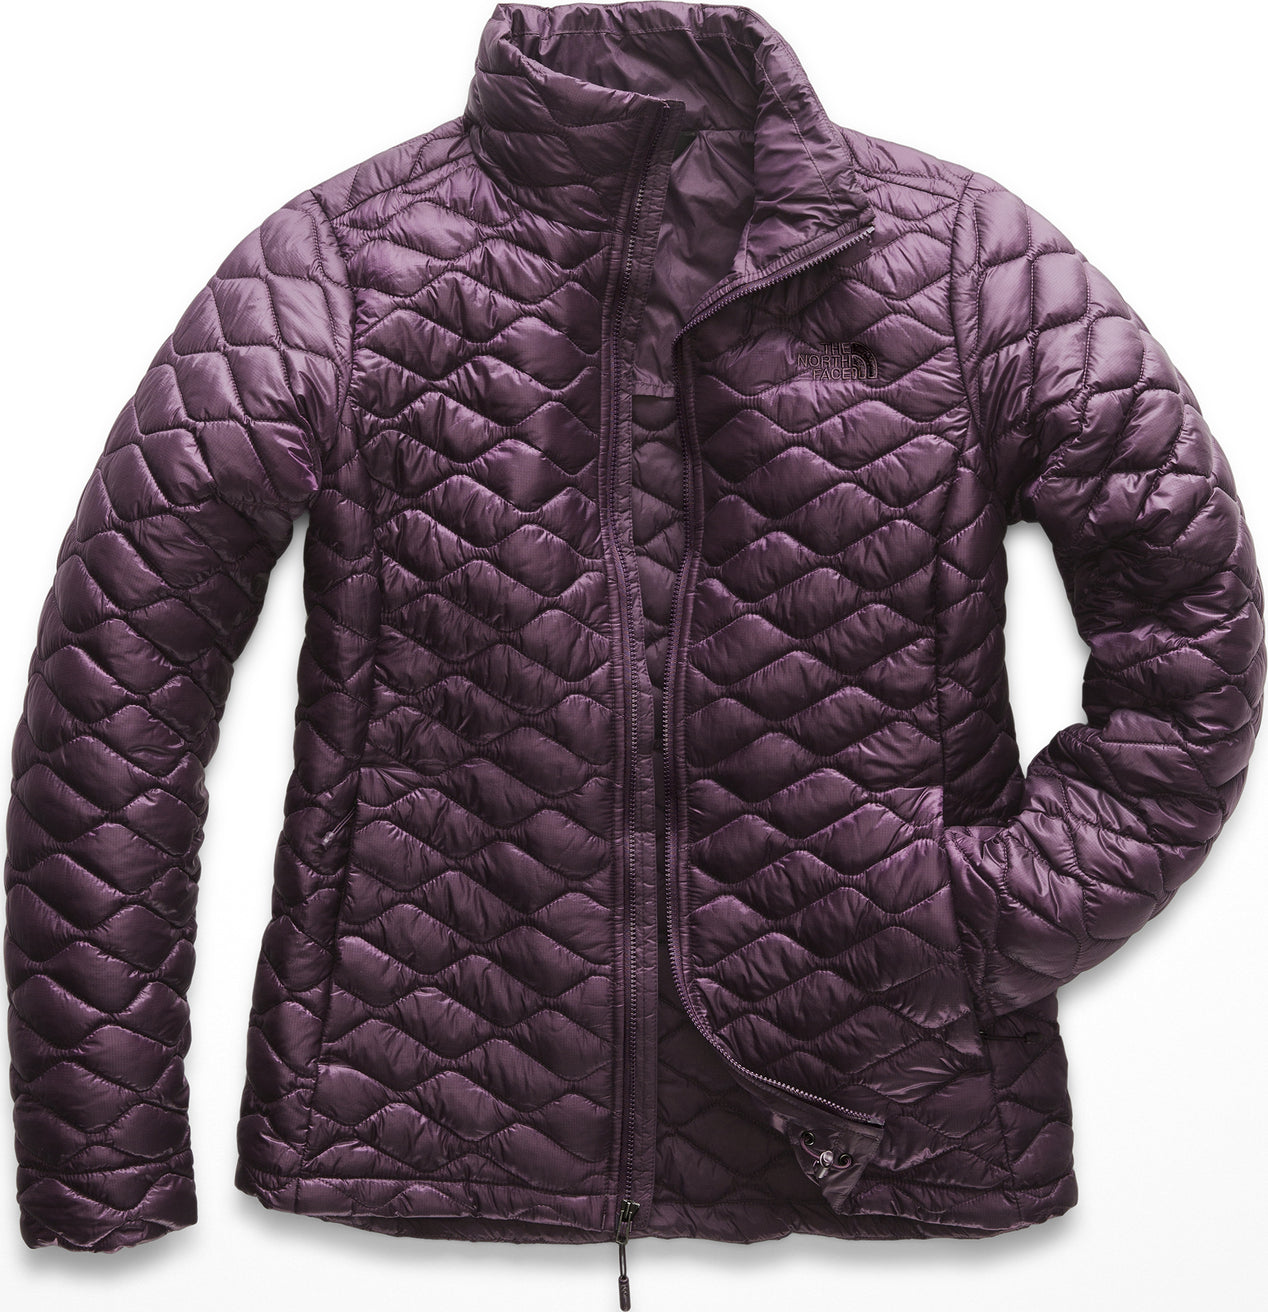 81cad093c ThermoBall Jacket - Women's